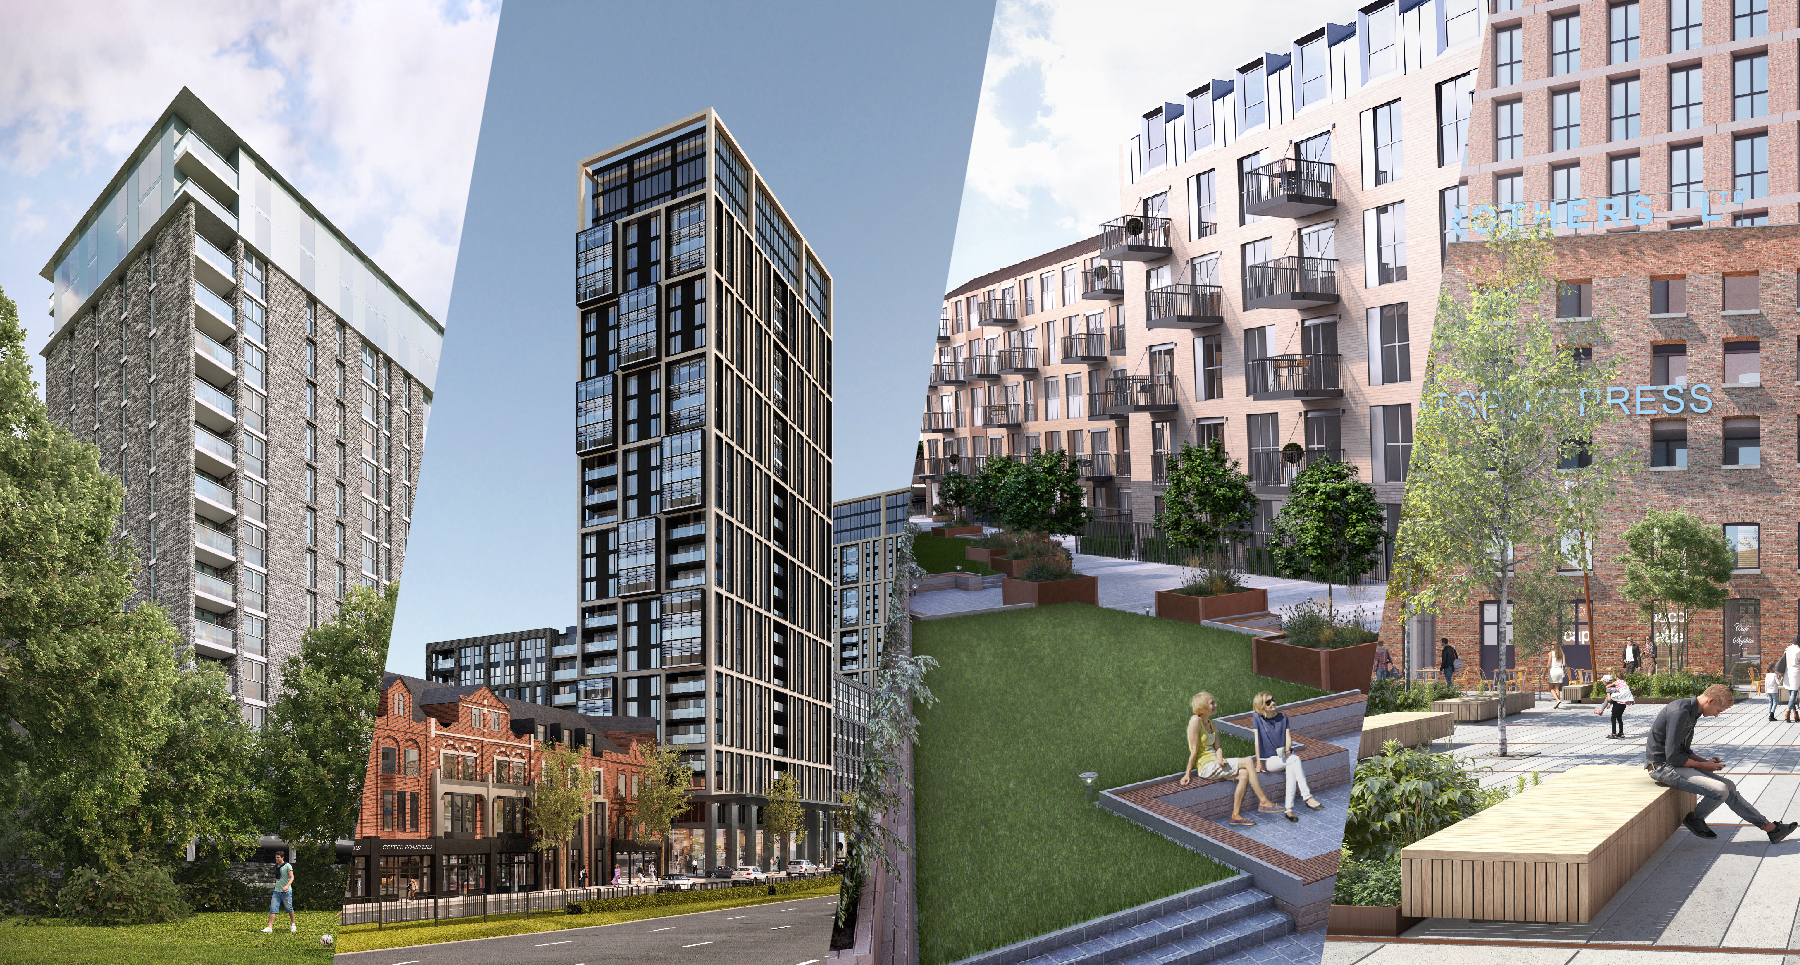 MCR Homes sets out 2019 expansion plans